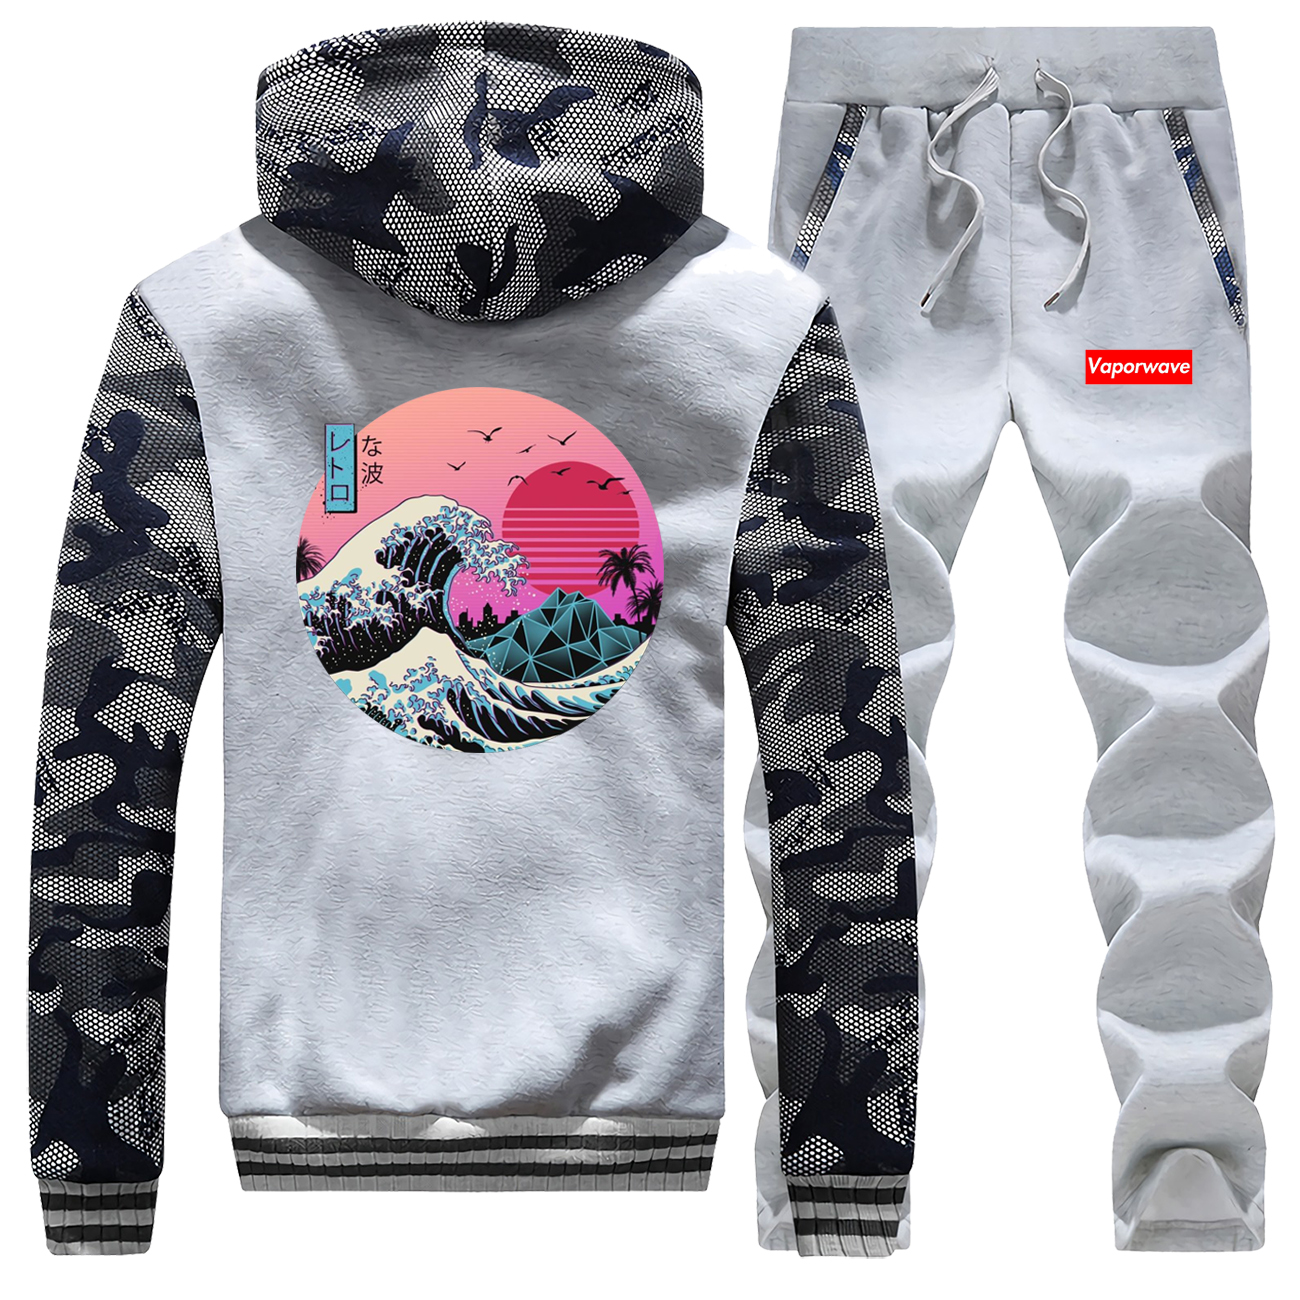 Japanese Style Fashion Male Set Vintage Vaporwave Men Camo Hoodies 2019 Winter Thick Jacket Harajuku Men's Sets Fleece Gym Suit